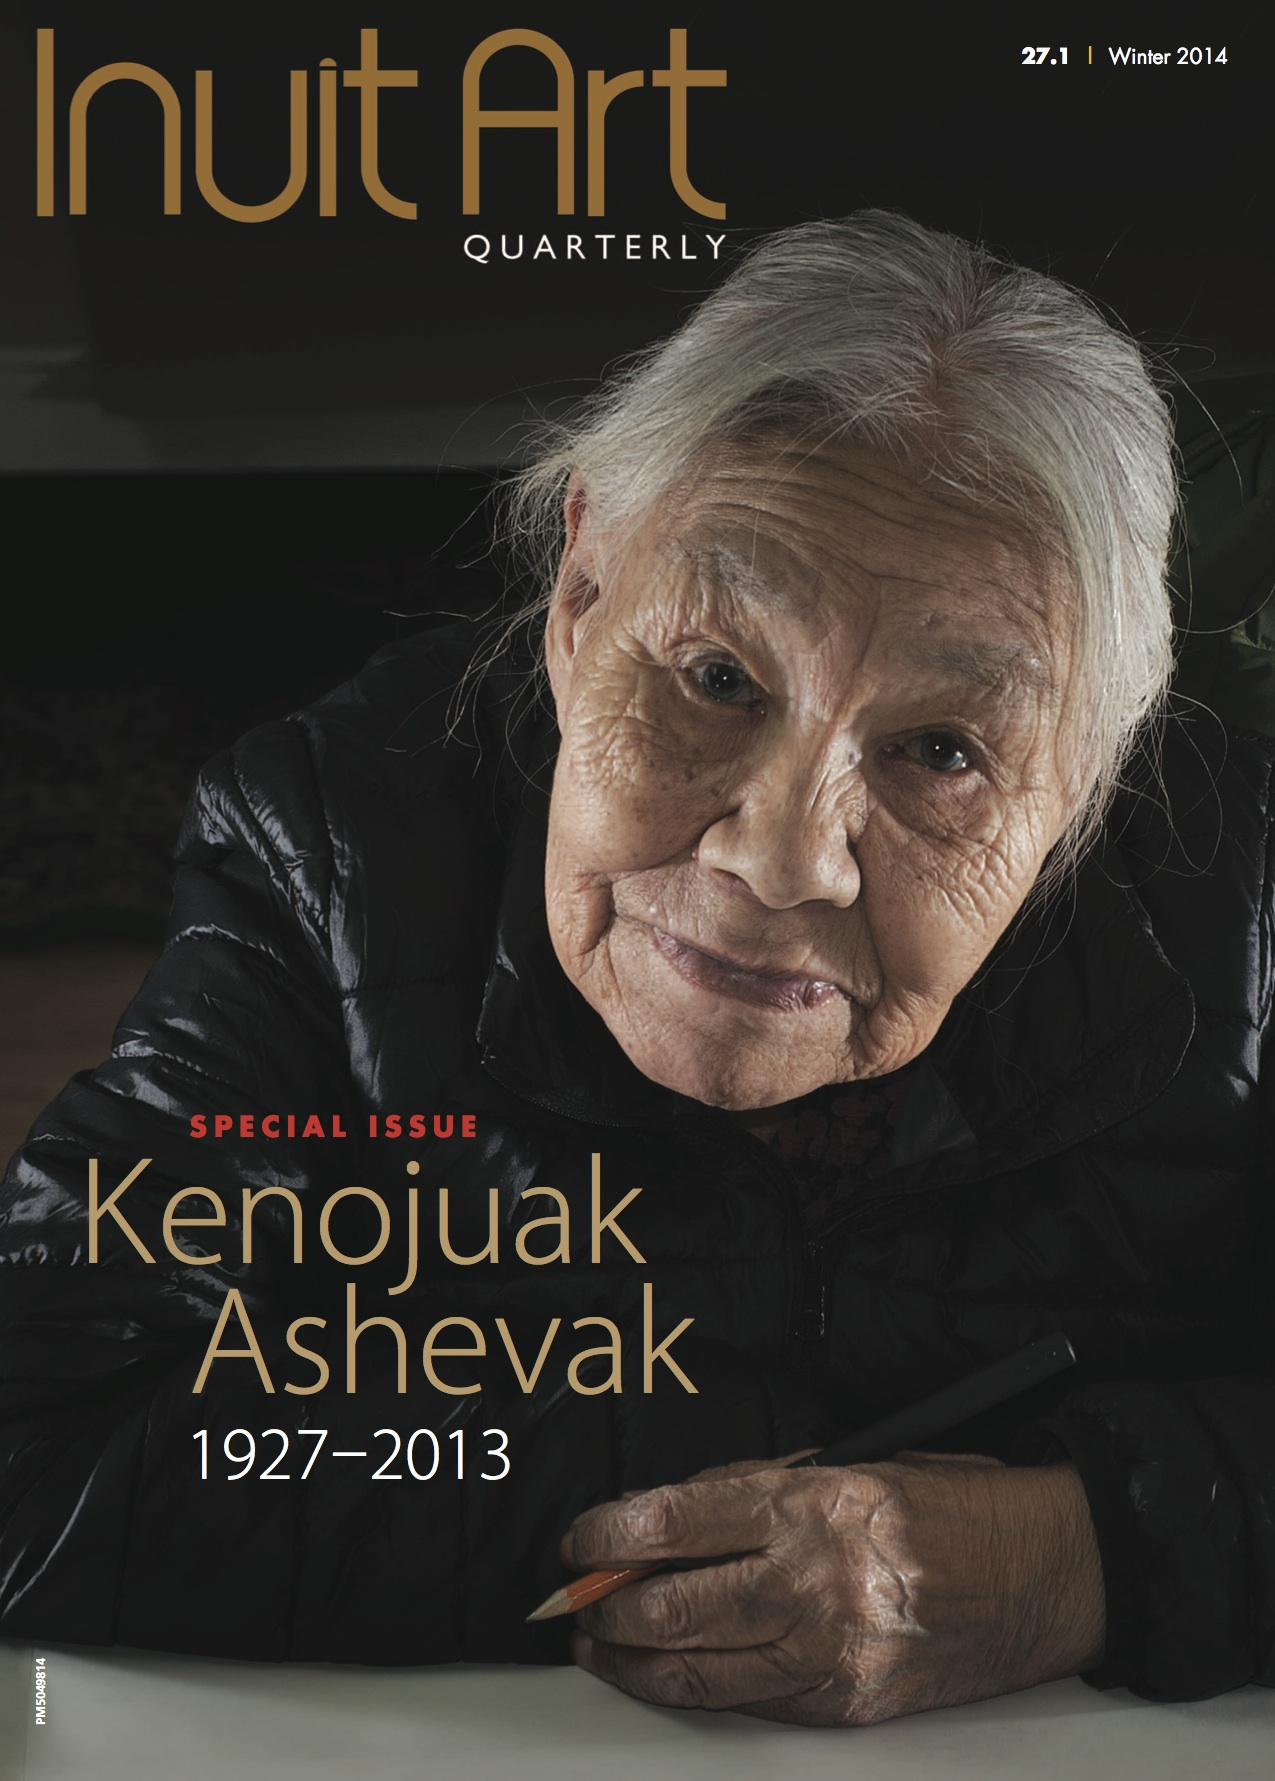 The cover of the new, relaunched Inuit Art Quarterly. (Courtesy Inuit Art Quarterly)